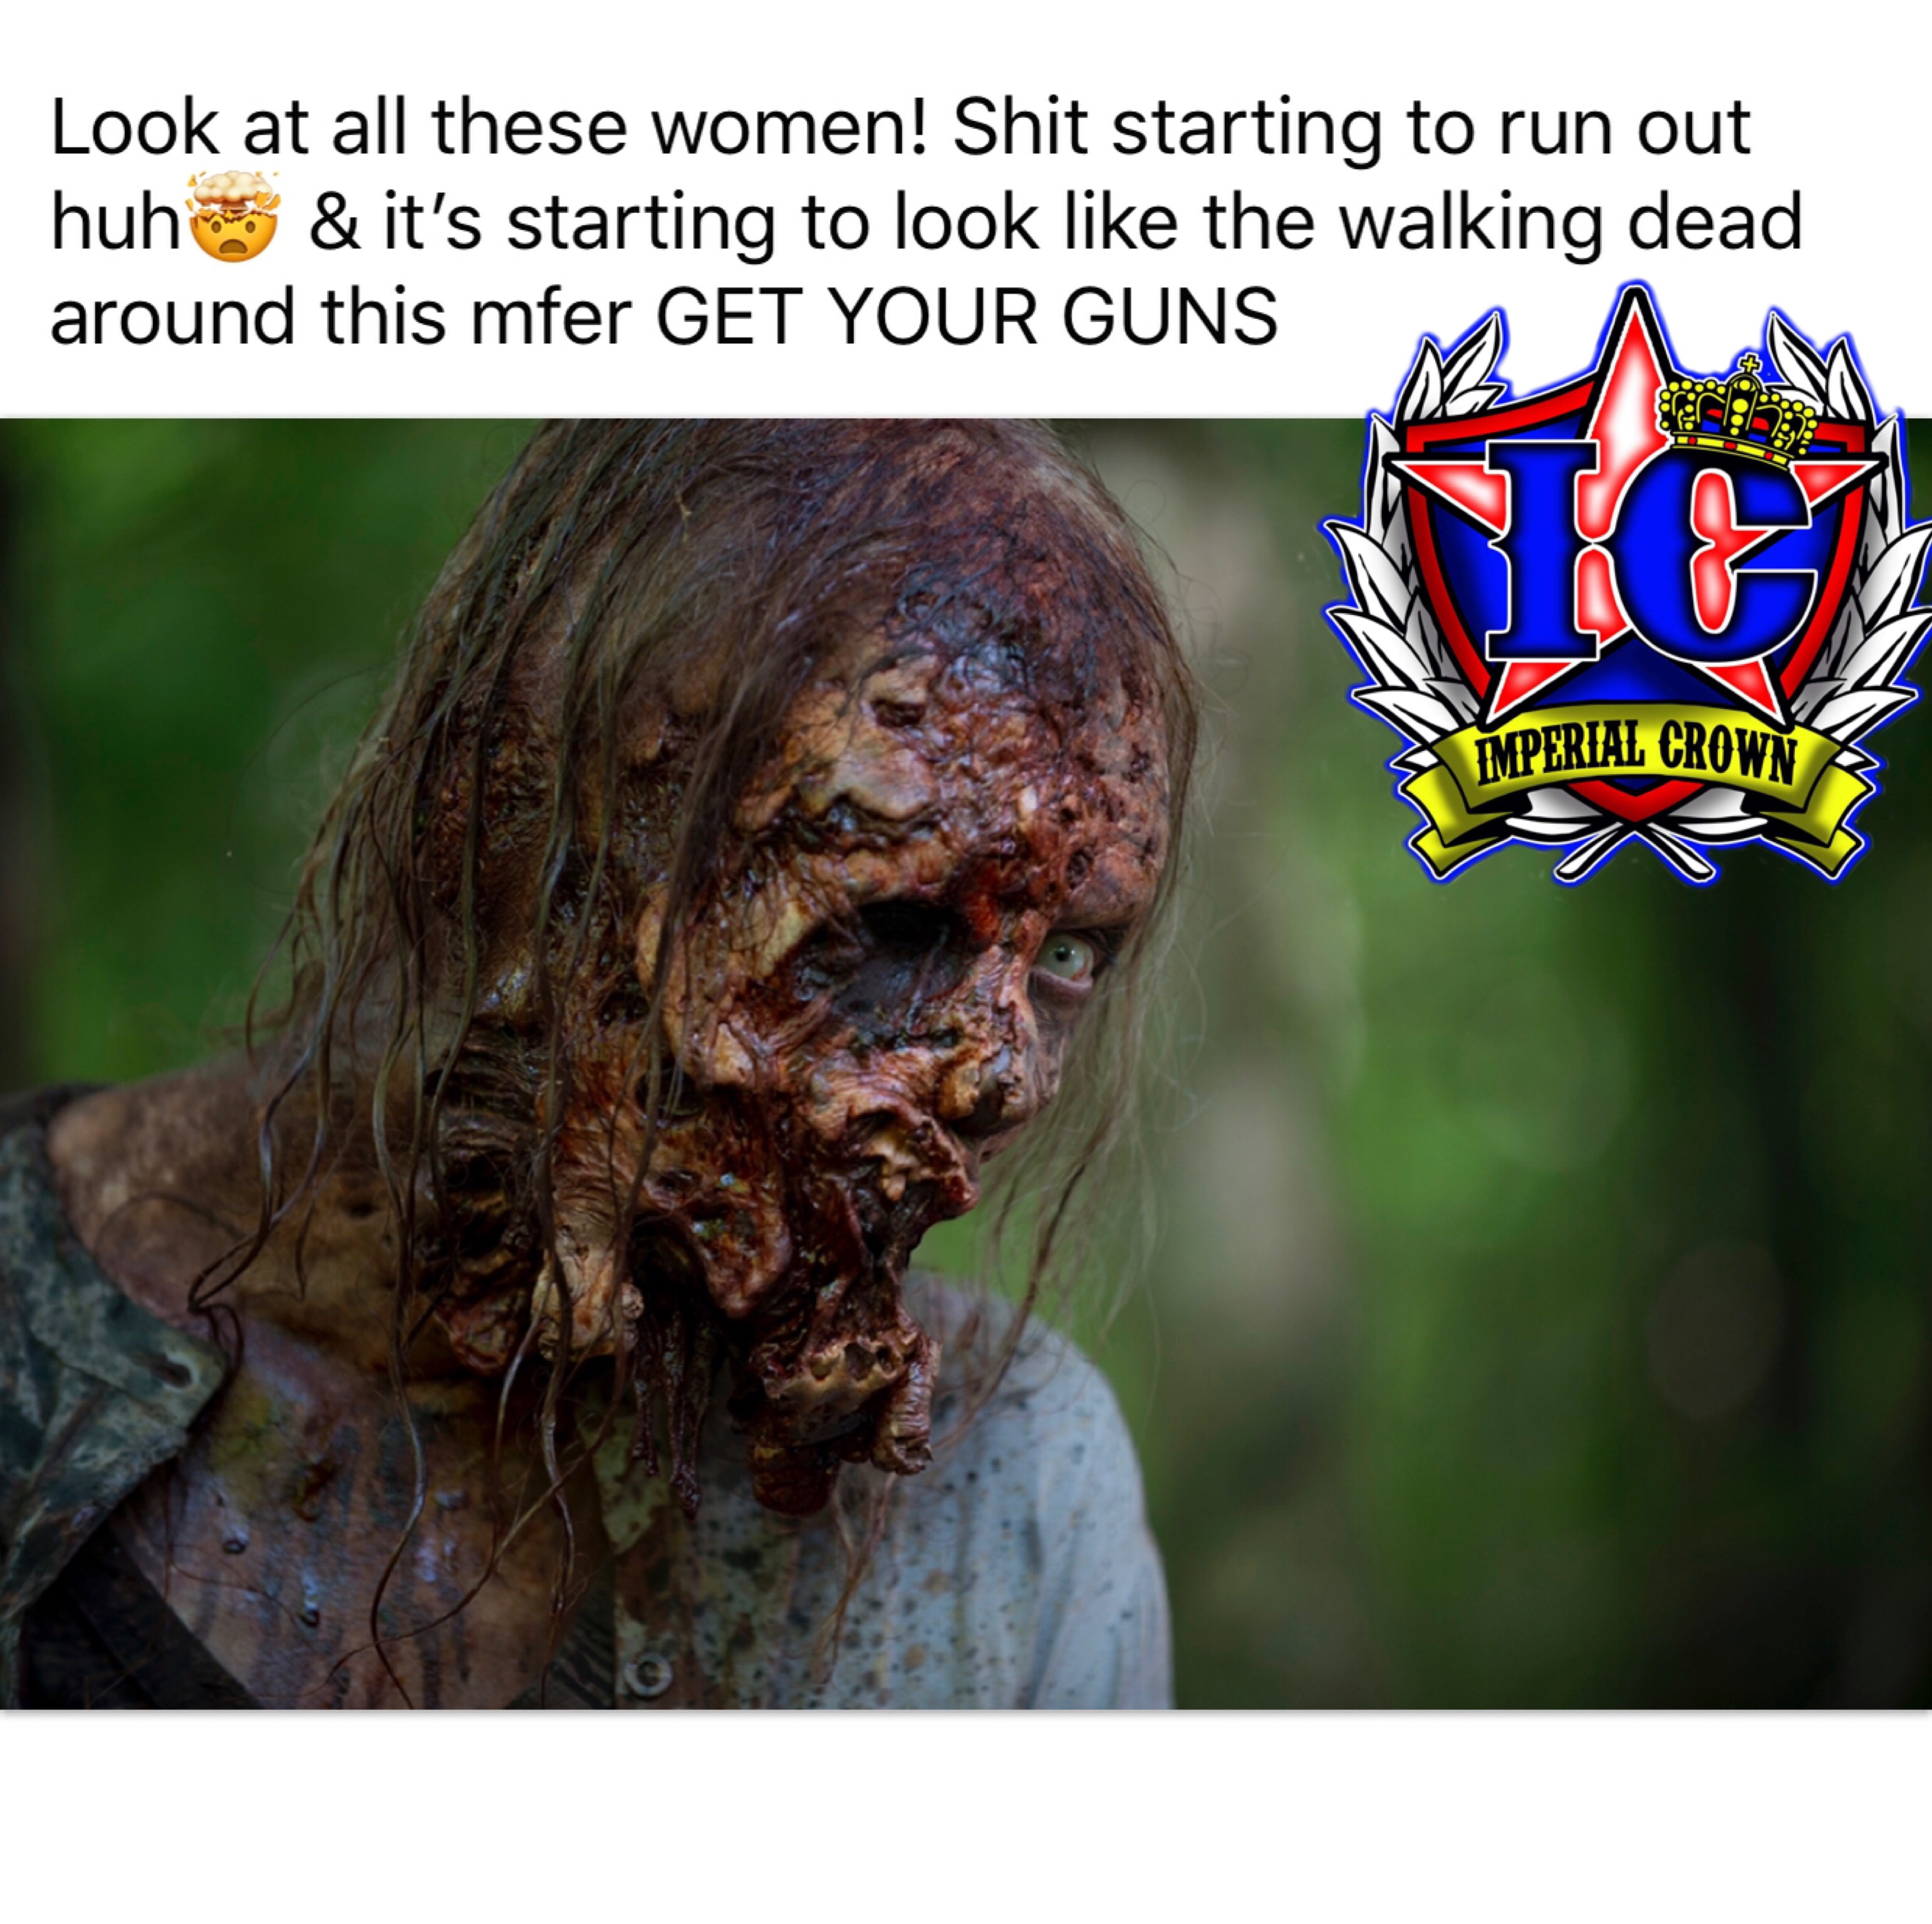 Look at these woman shit starting to run out huh & its to look like the walking dead around this